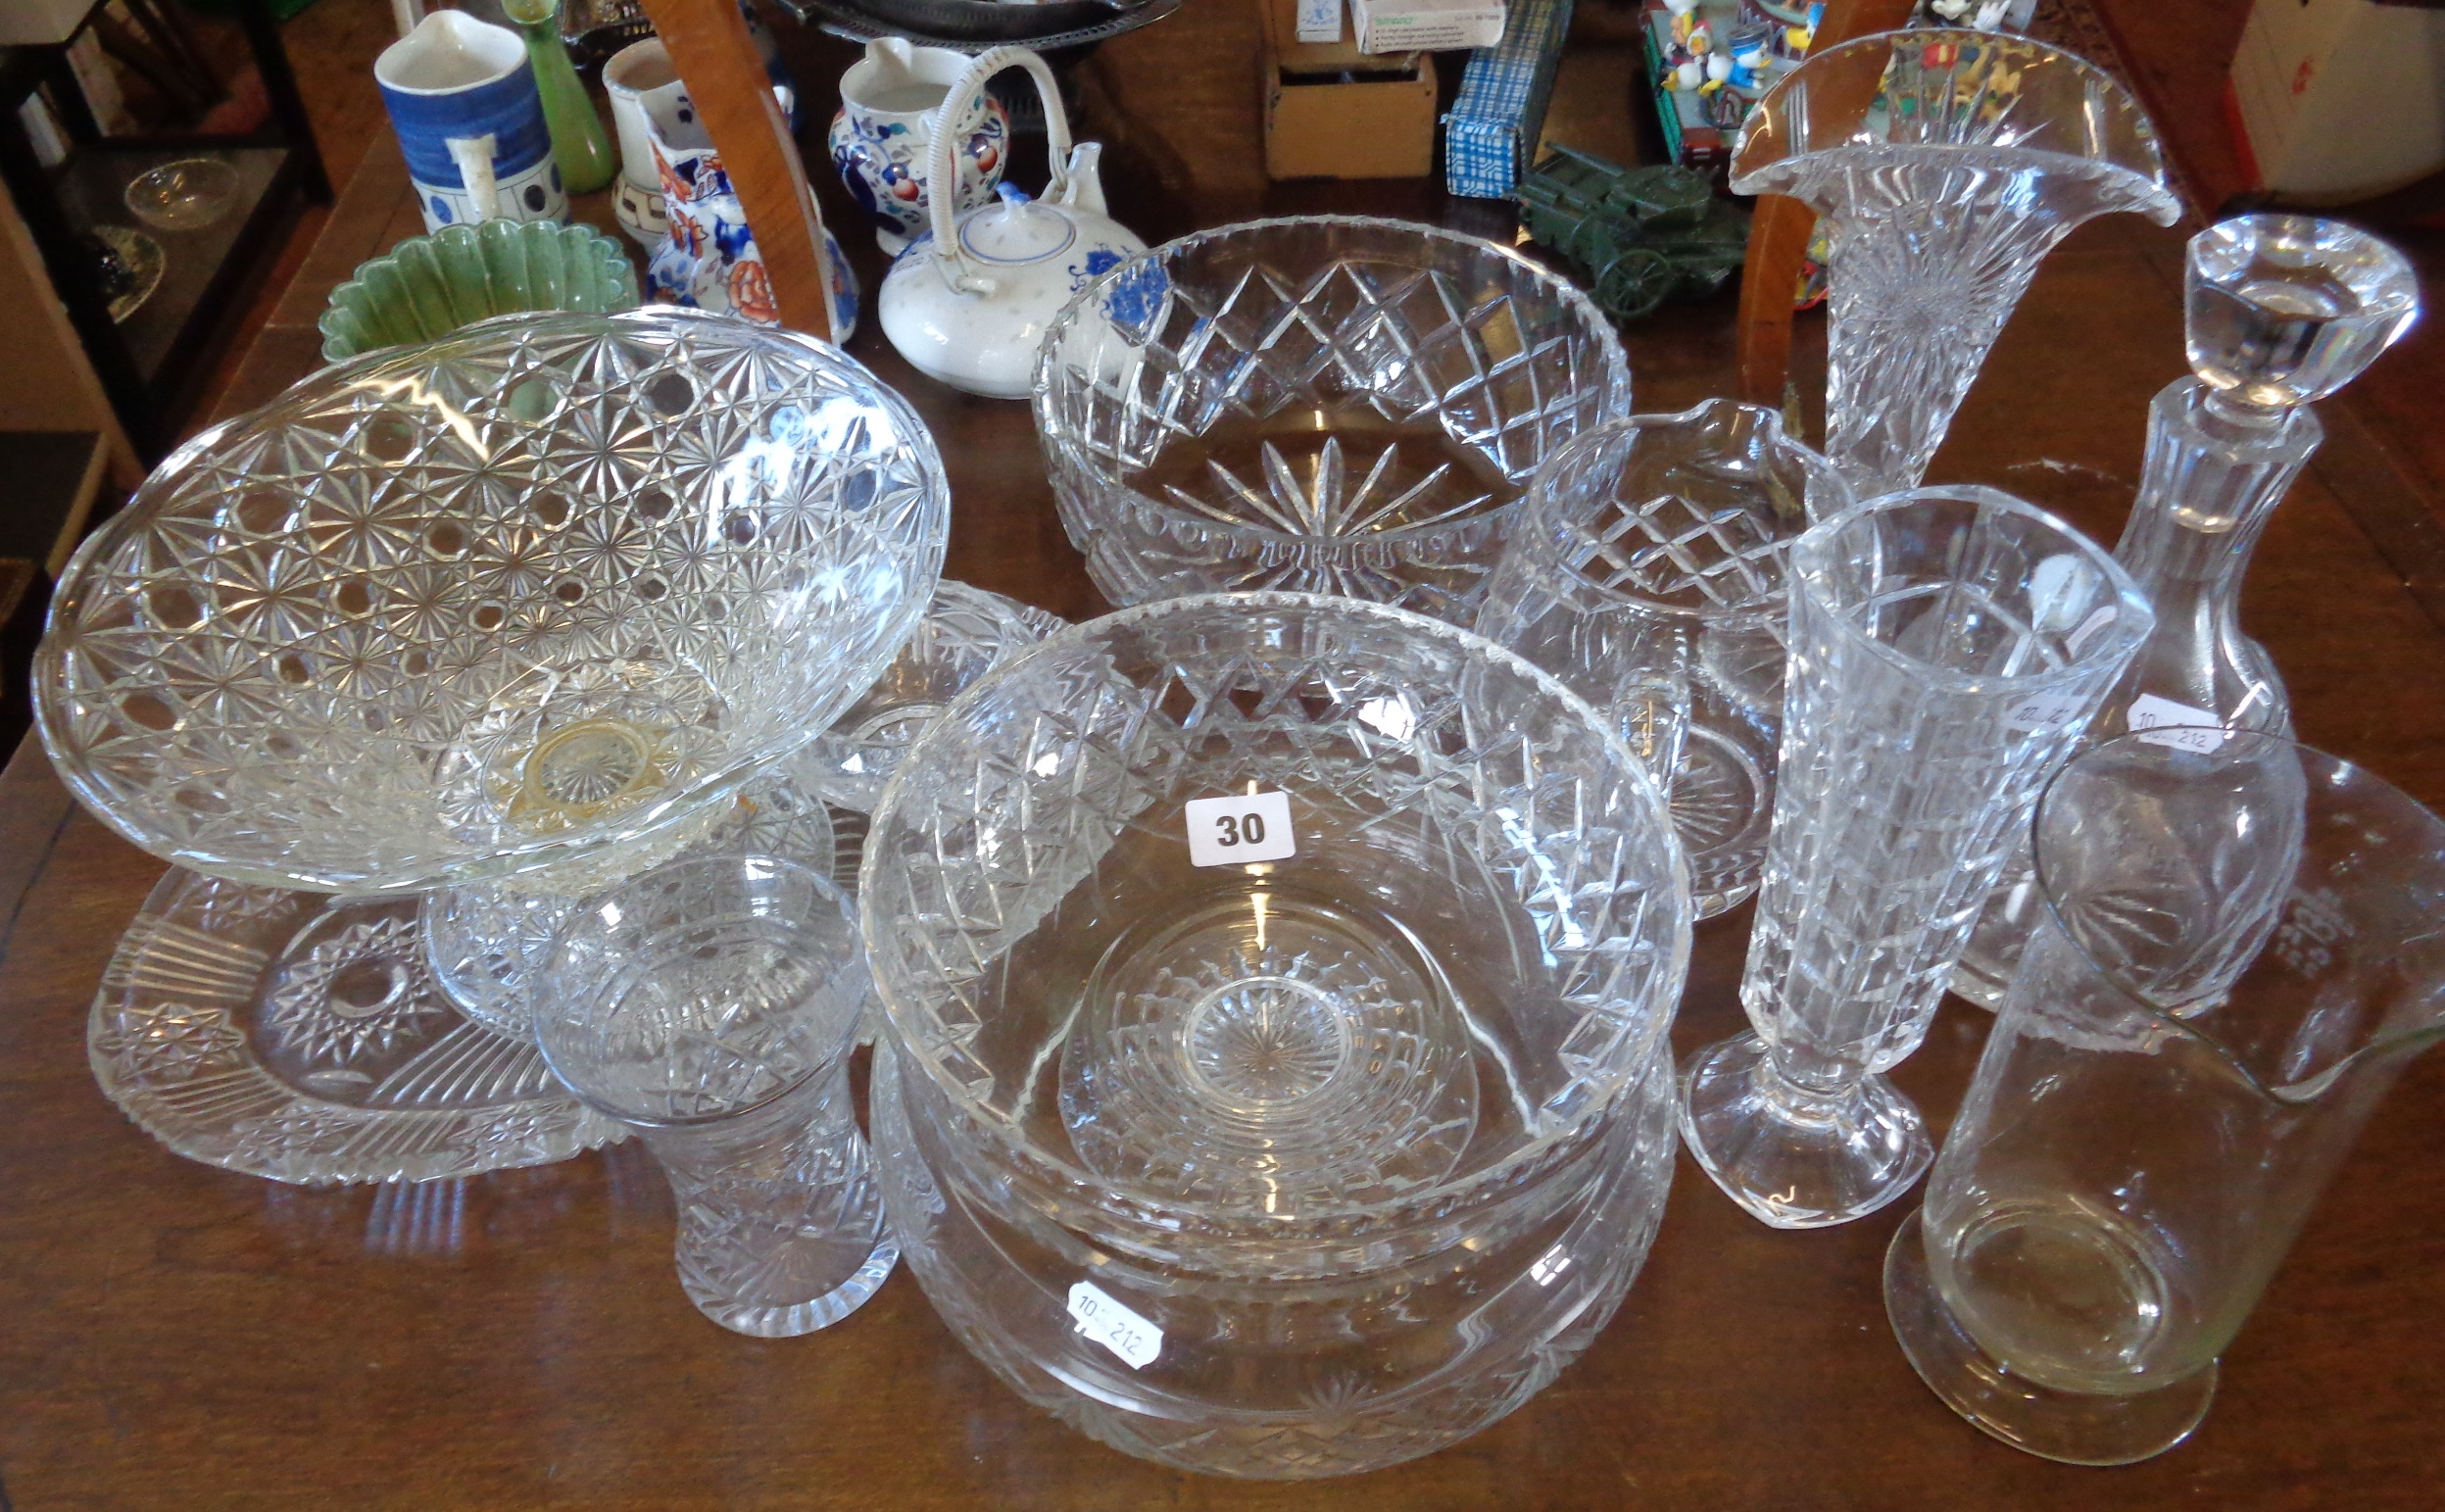 Lot 30 - Assorted cut glass salad bowls, a ships decanter and vases, etc.